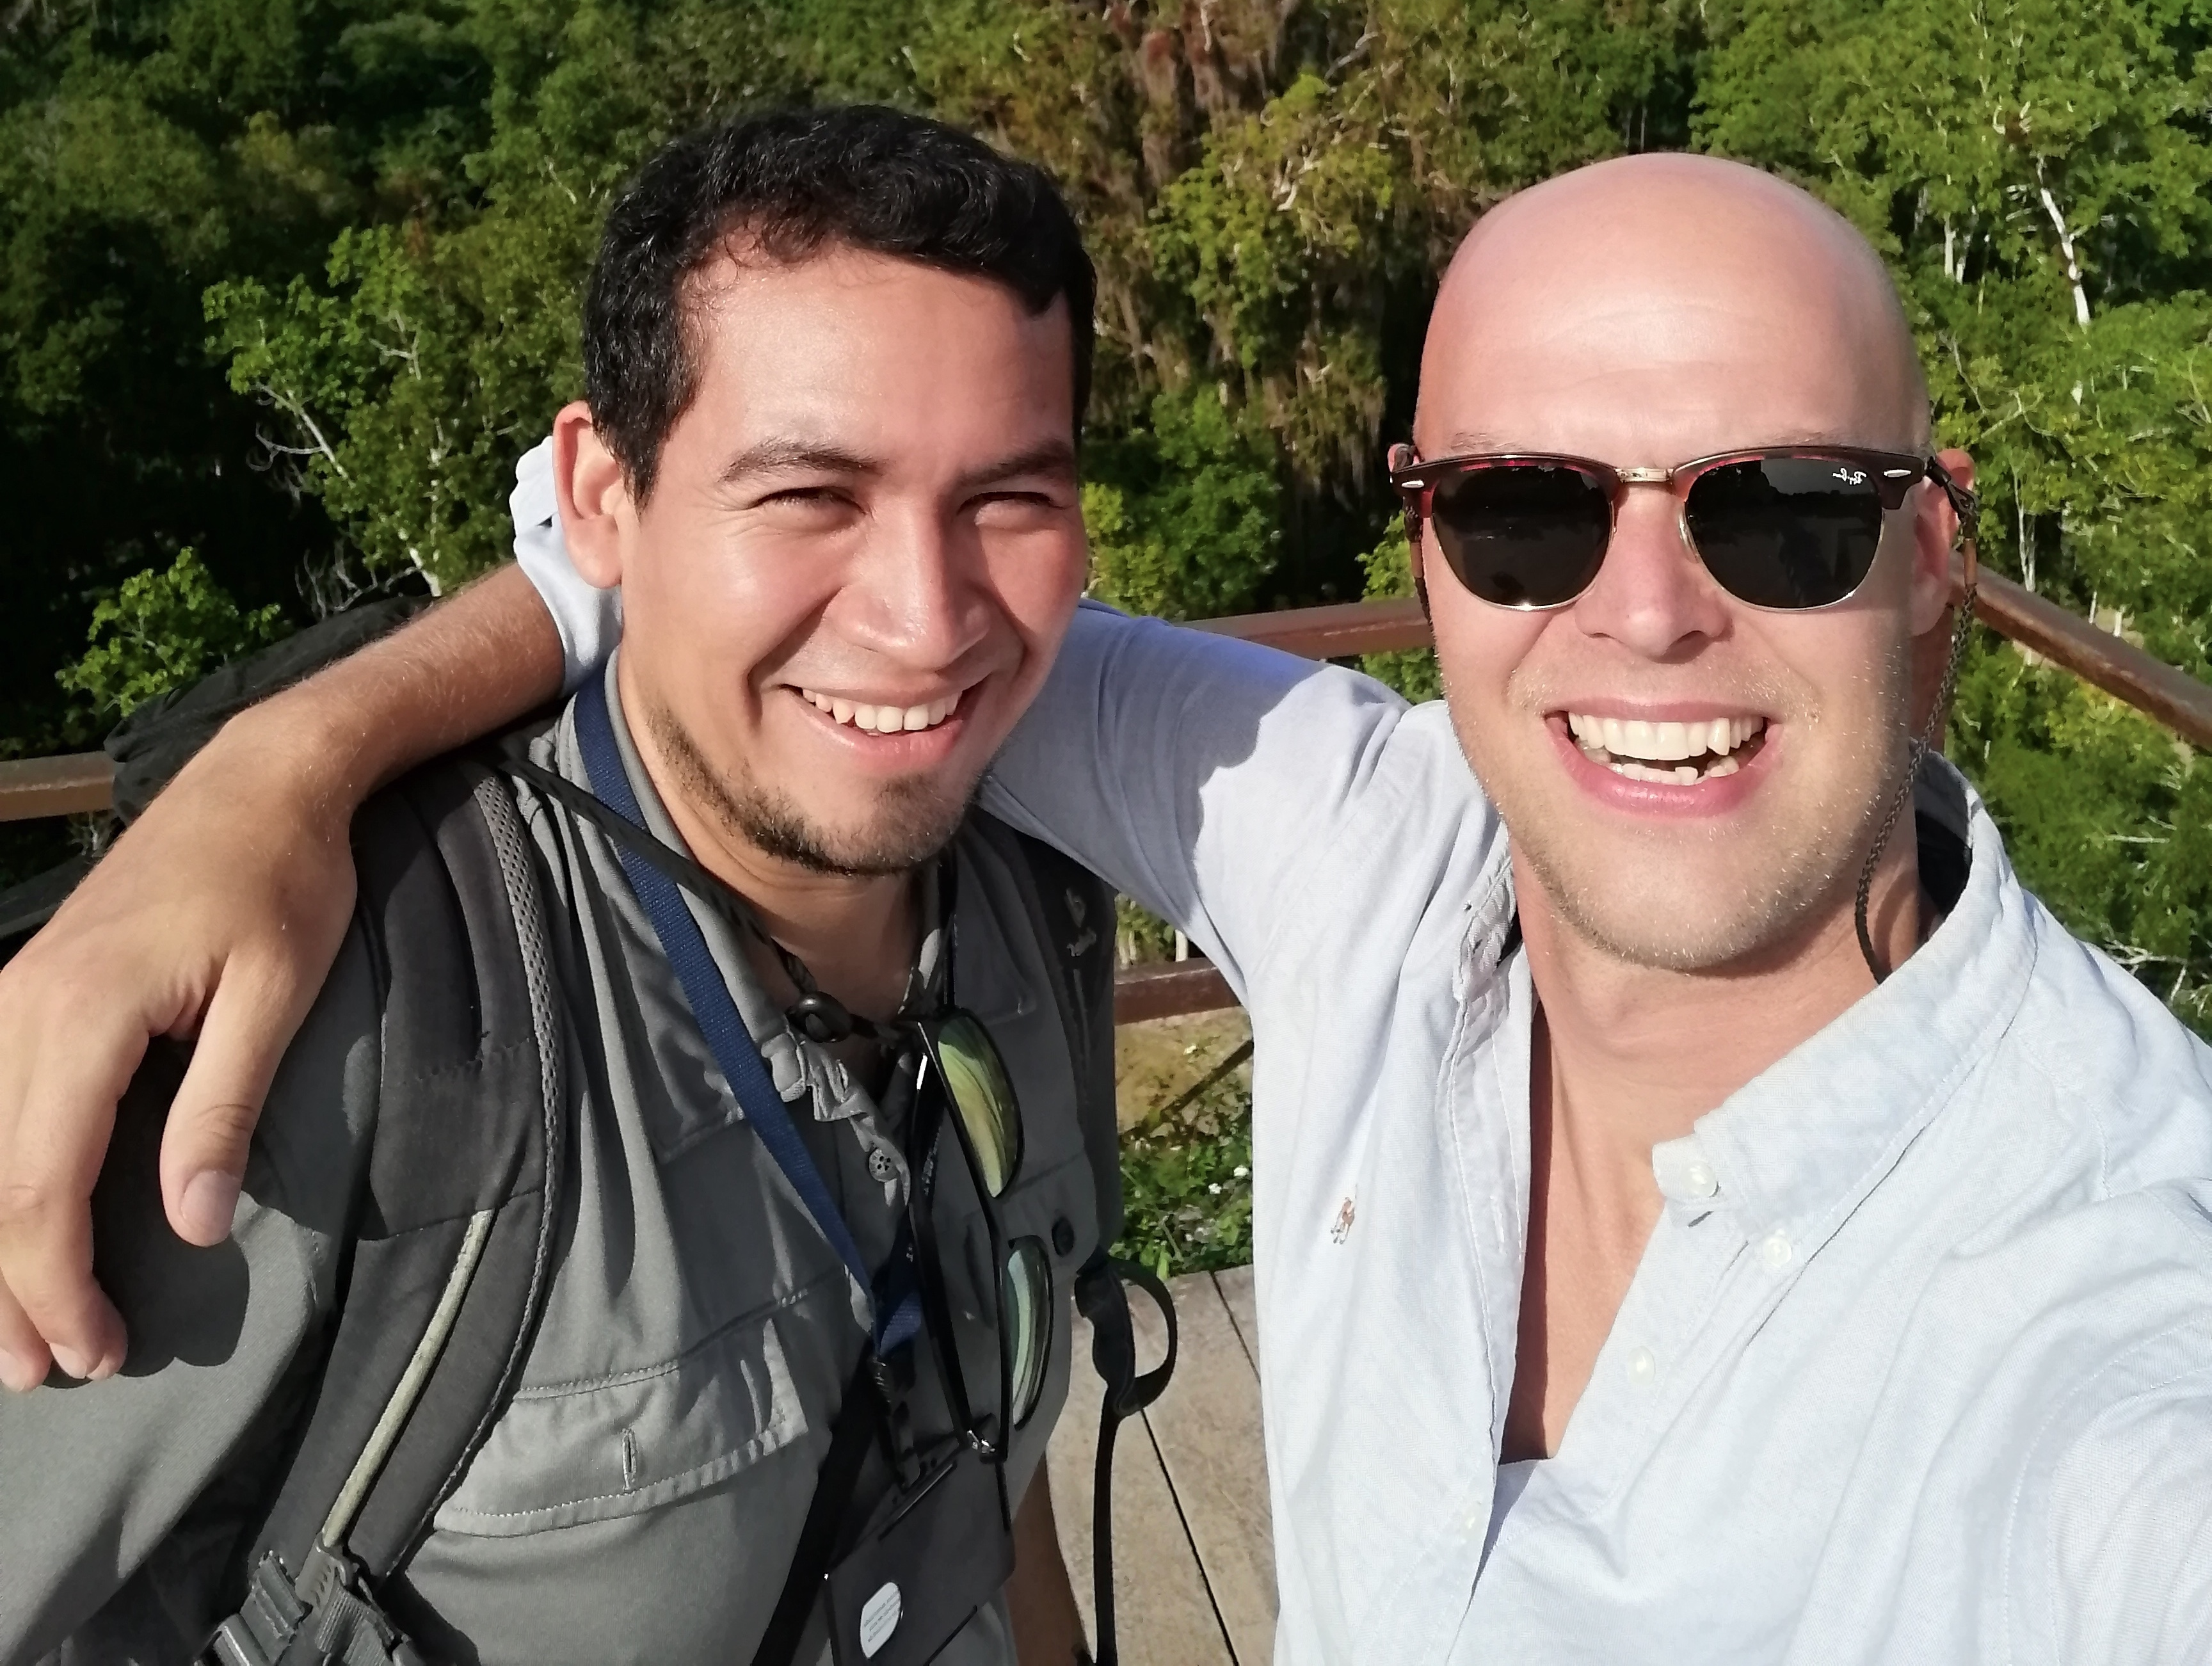 Picture of Elmer, the owner of Tikal VIP Tours, with one of his guests